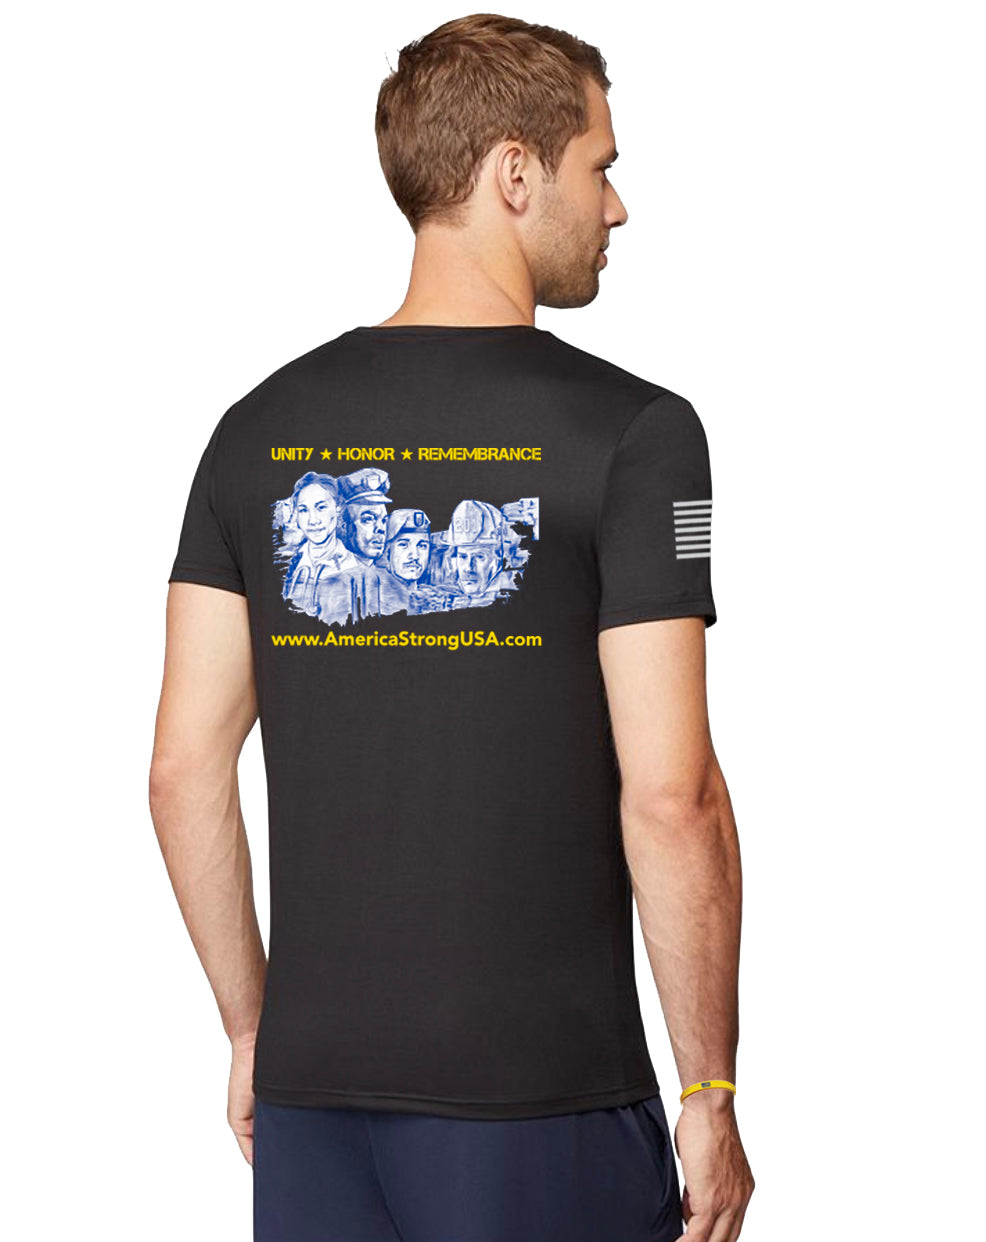 Men's Performance Short Sleeve T-Shirt, Mount Rushmore, Style #46001